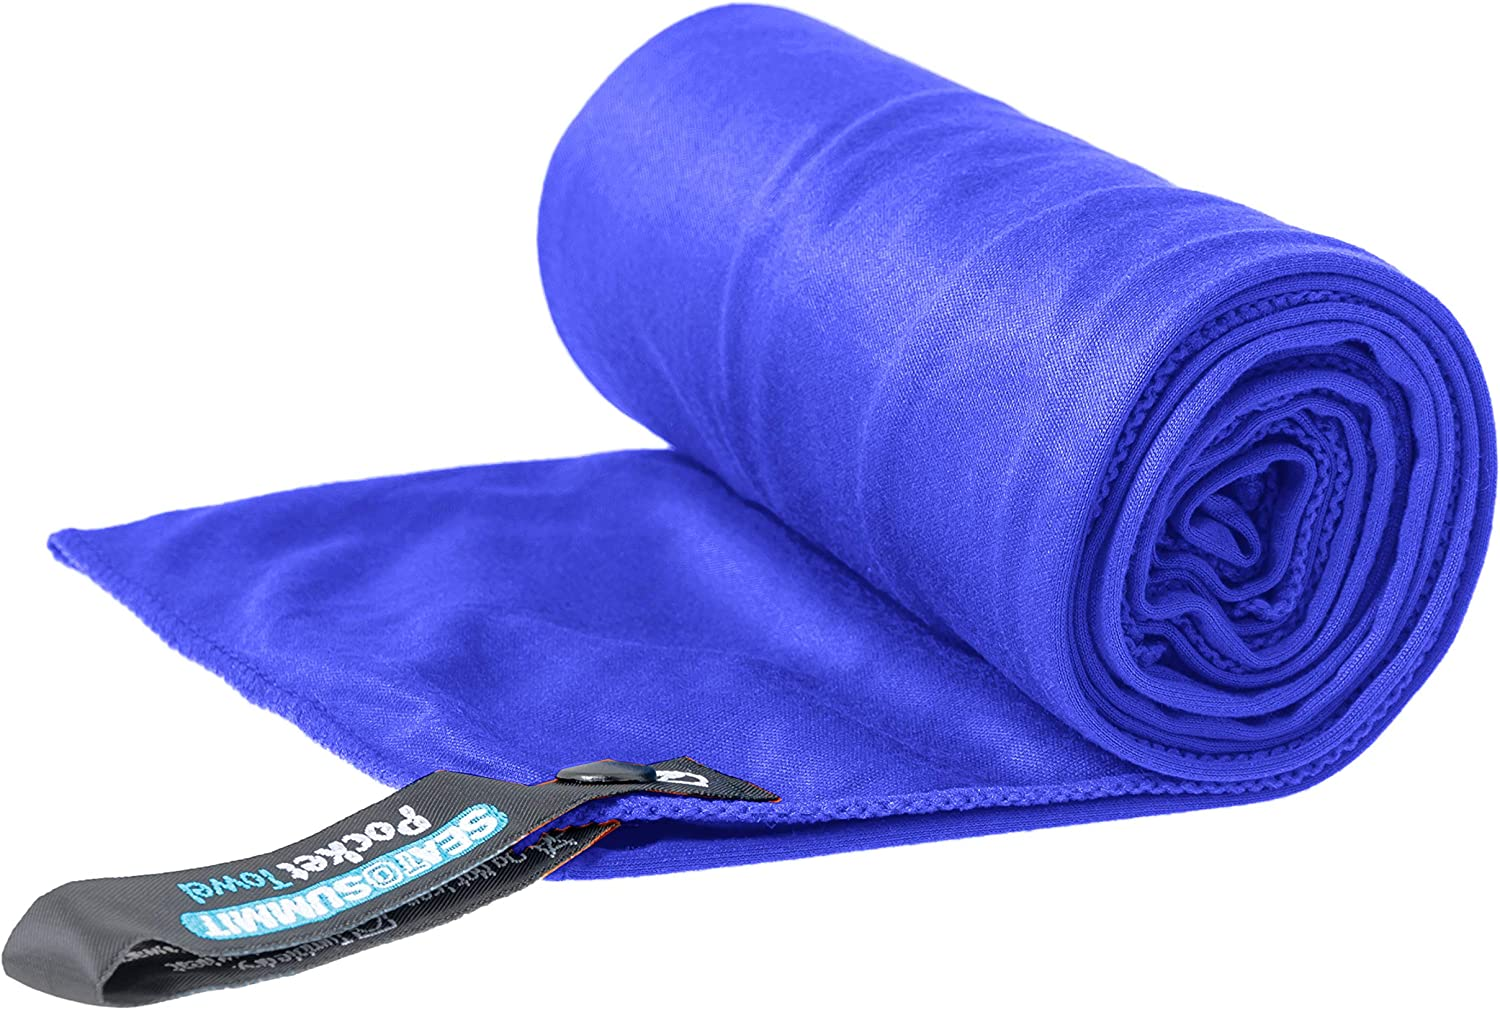 BERRY SEA TO SUMMIT POCKET TOWEL SMALL